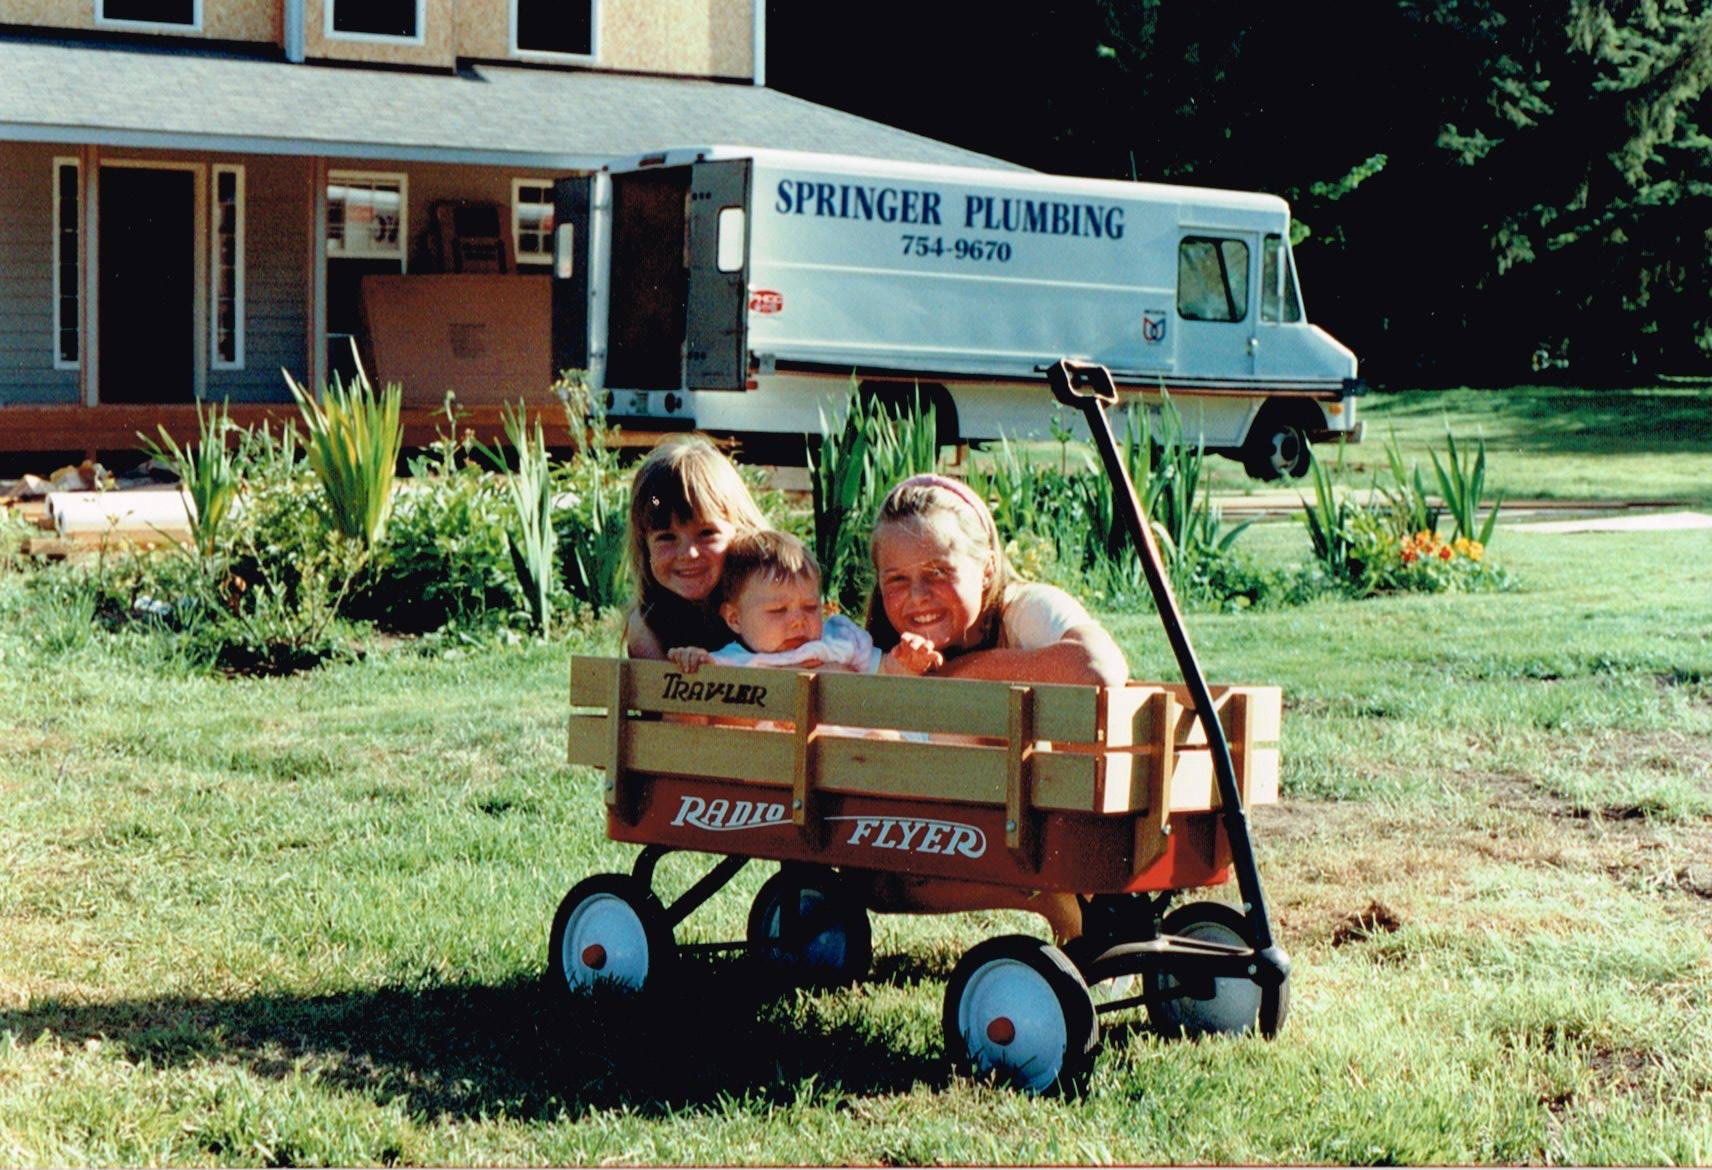 Ron & Diane's 3 daughters with one of their first plumbing vans in the background.